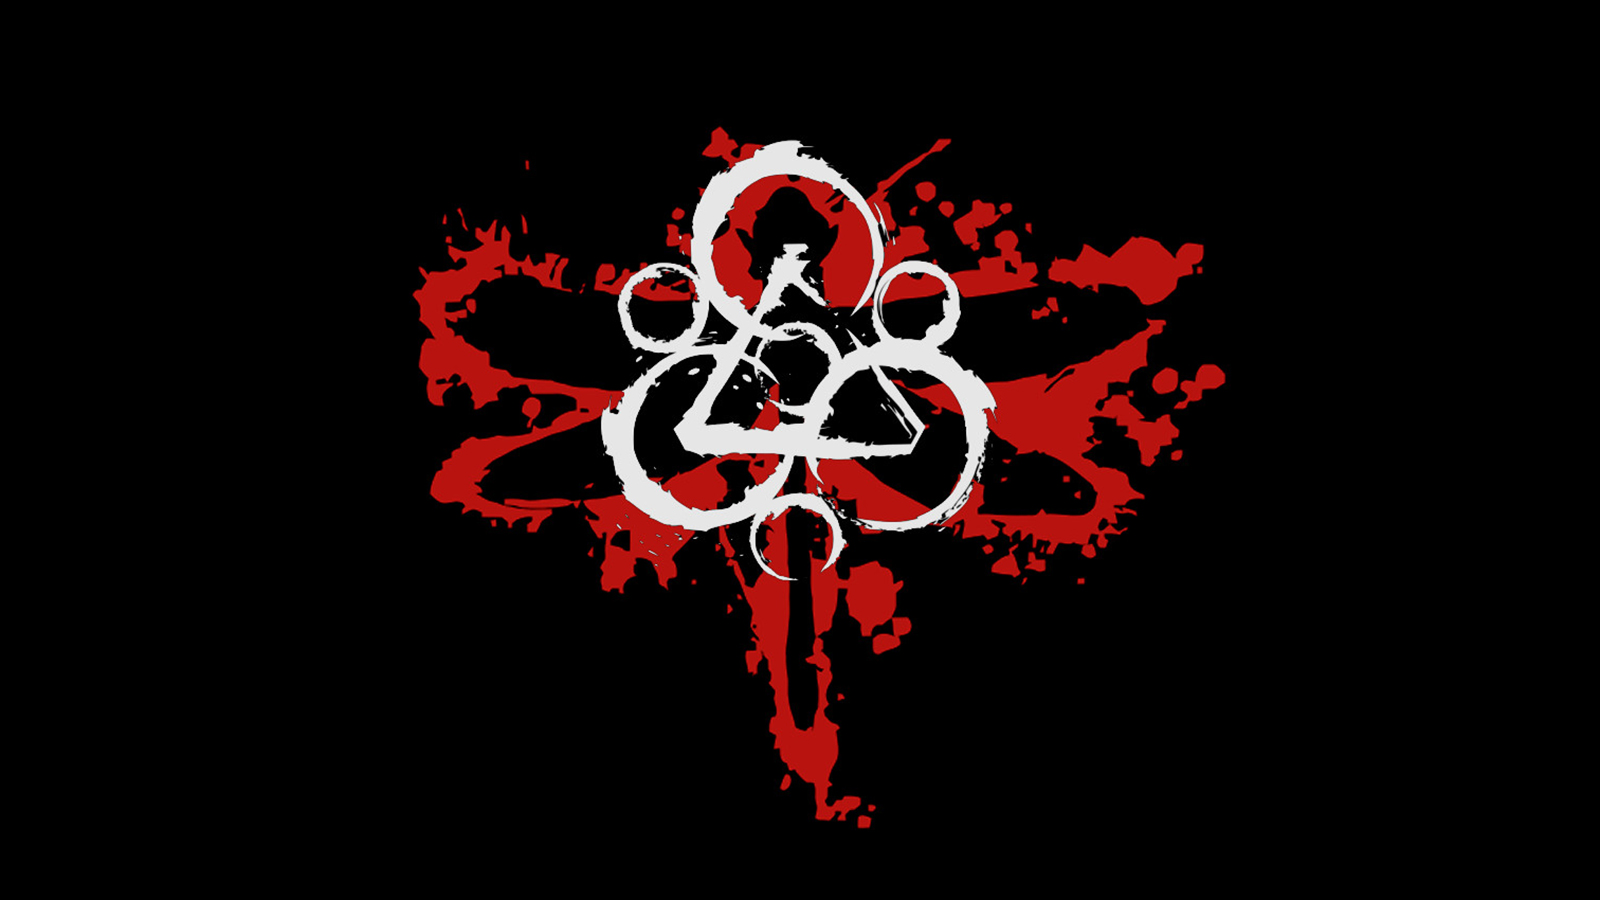 coheed and cambria the afterman wallpaper The official website of coheed and cambria, featuring links to news, photos, videos, tour, music, store, and the story.